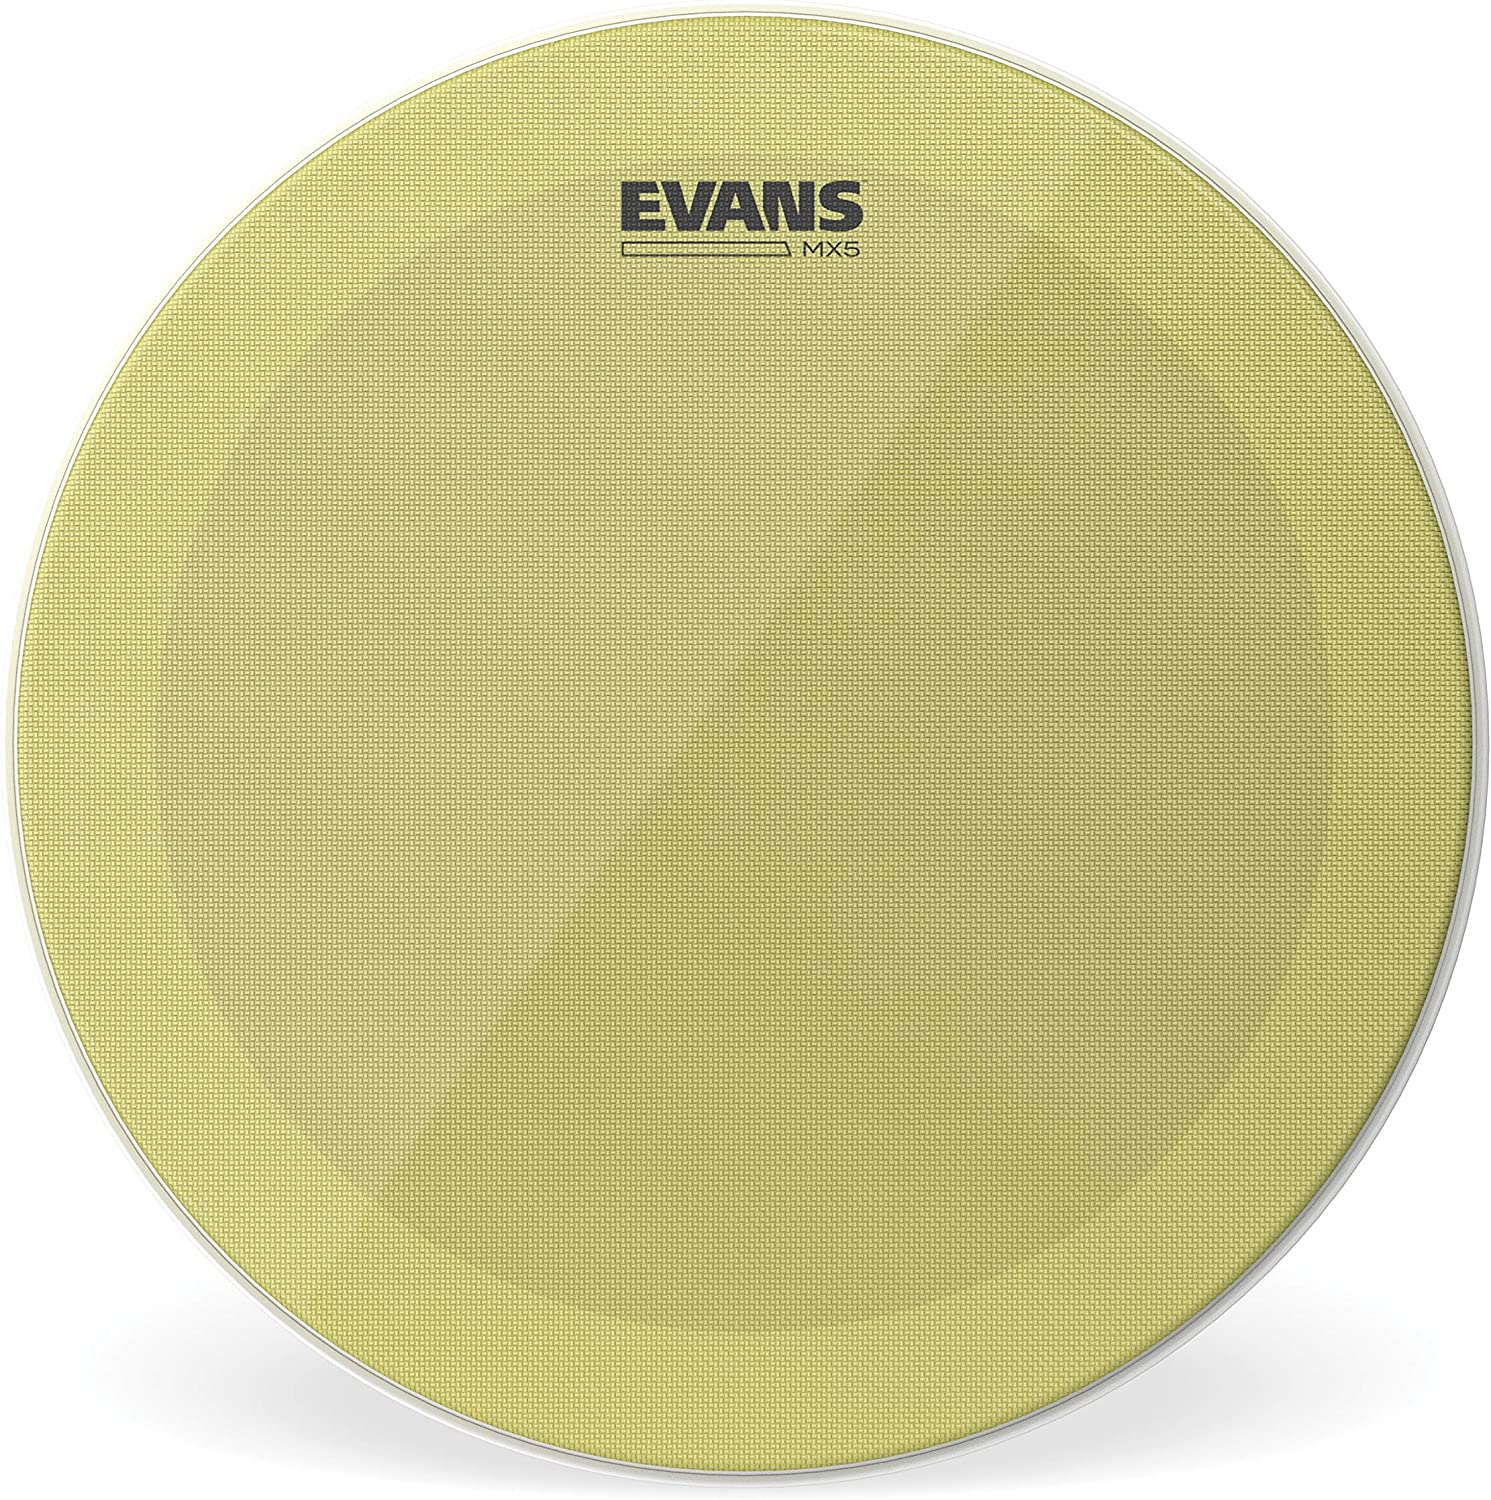 Evans MX5 Marching Snare Side Drum Head, 14 Inch 91egTbpfLOL